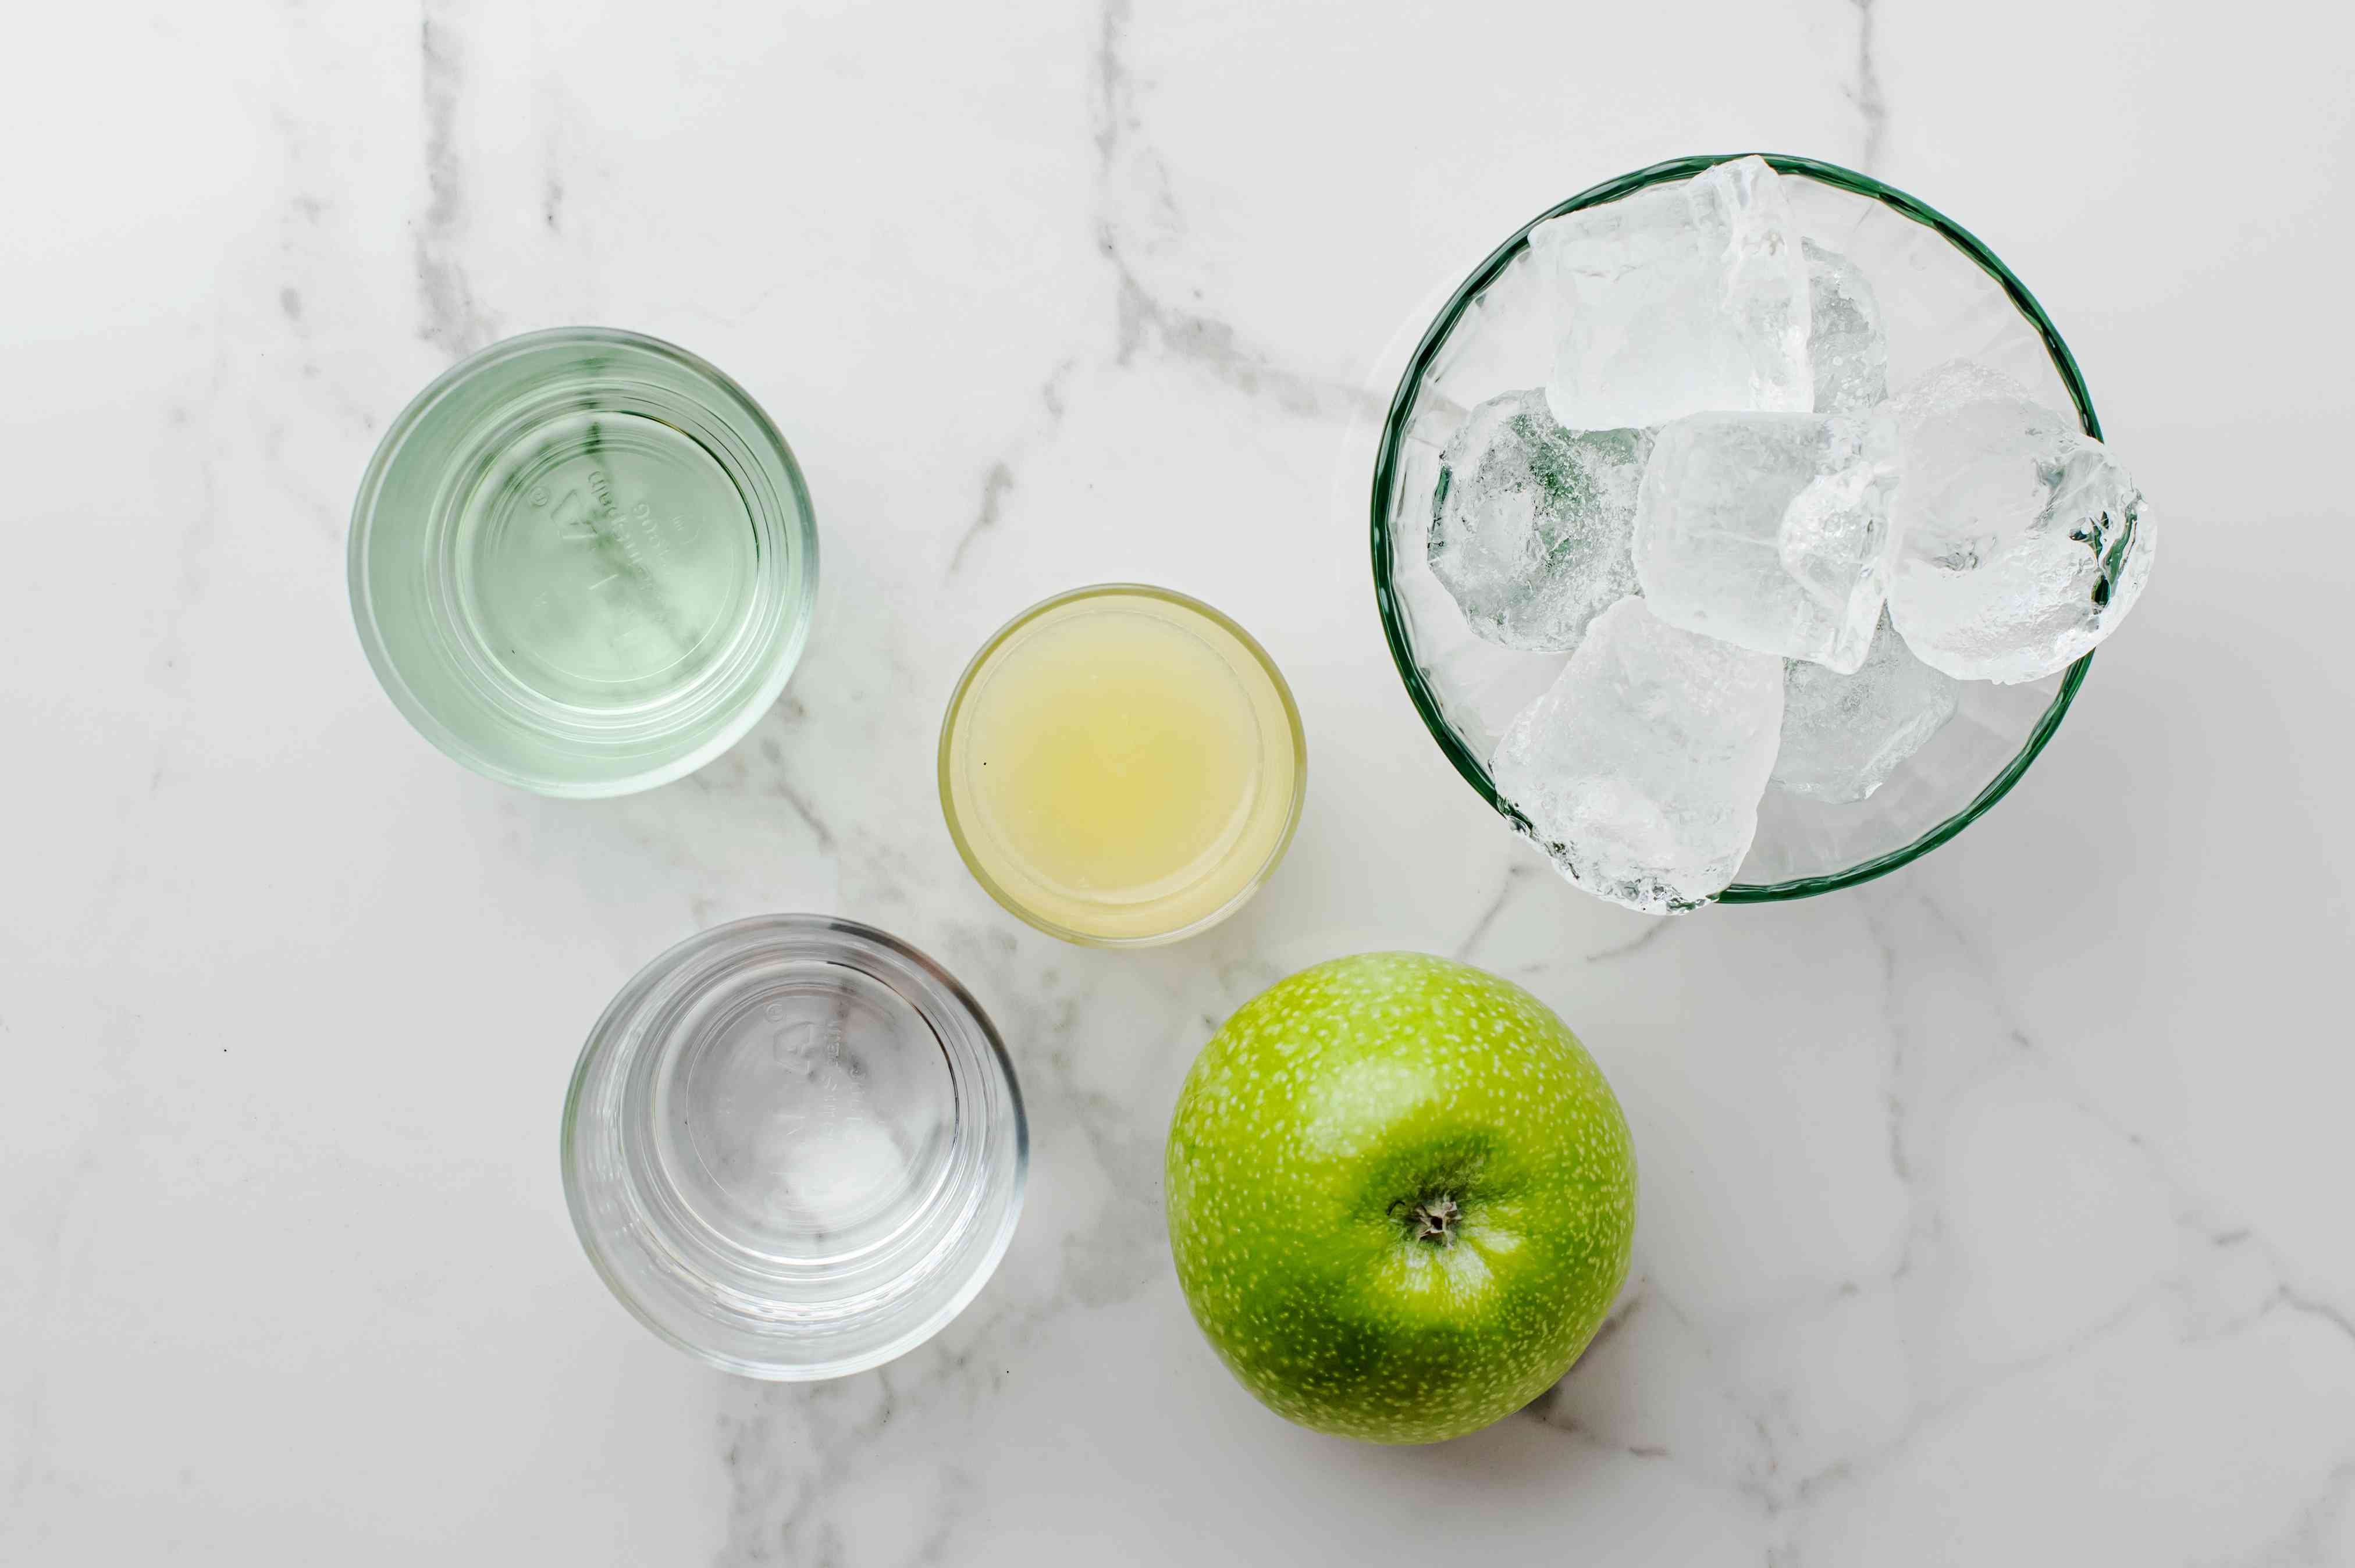 Ingredients for a green apple martini